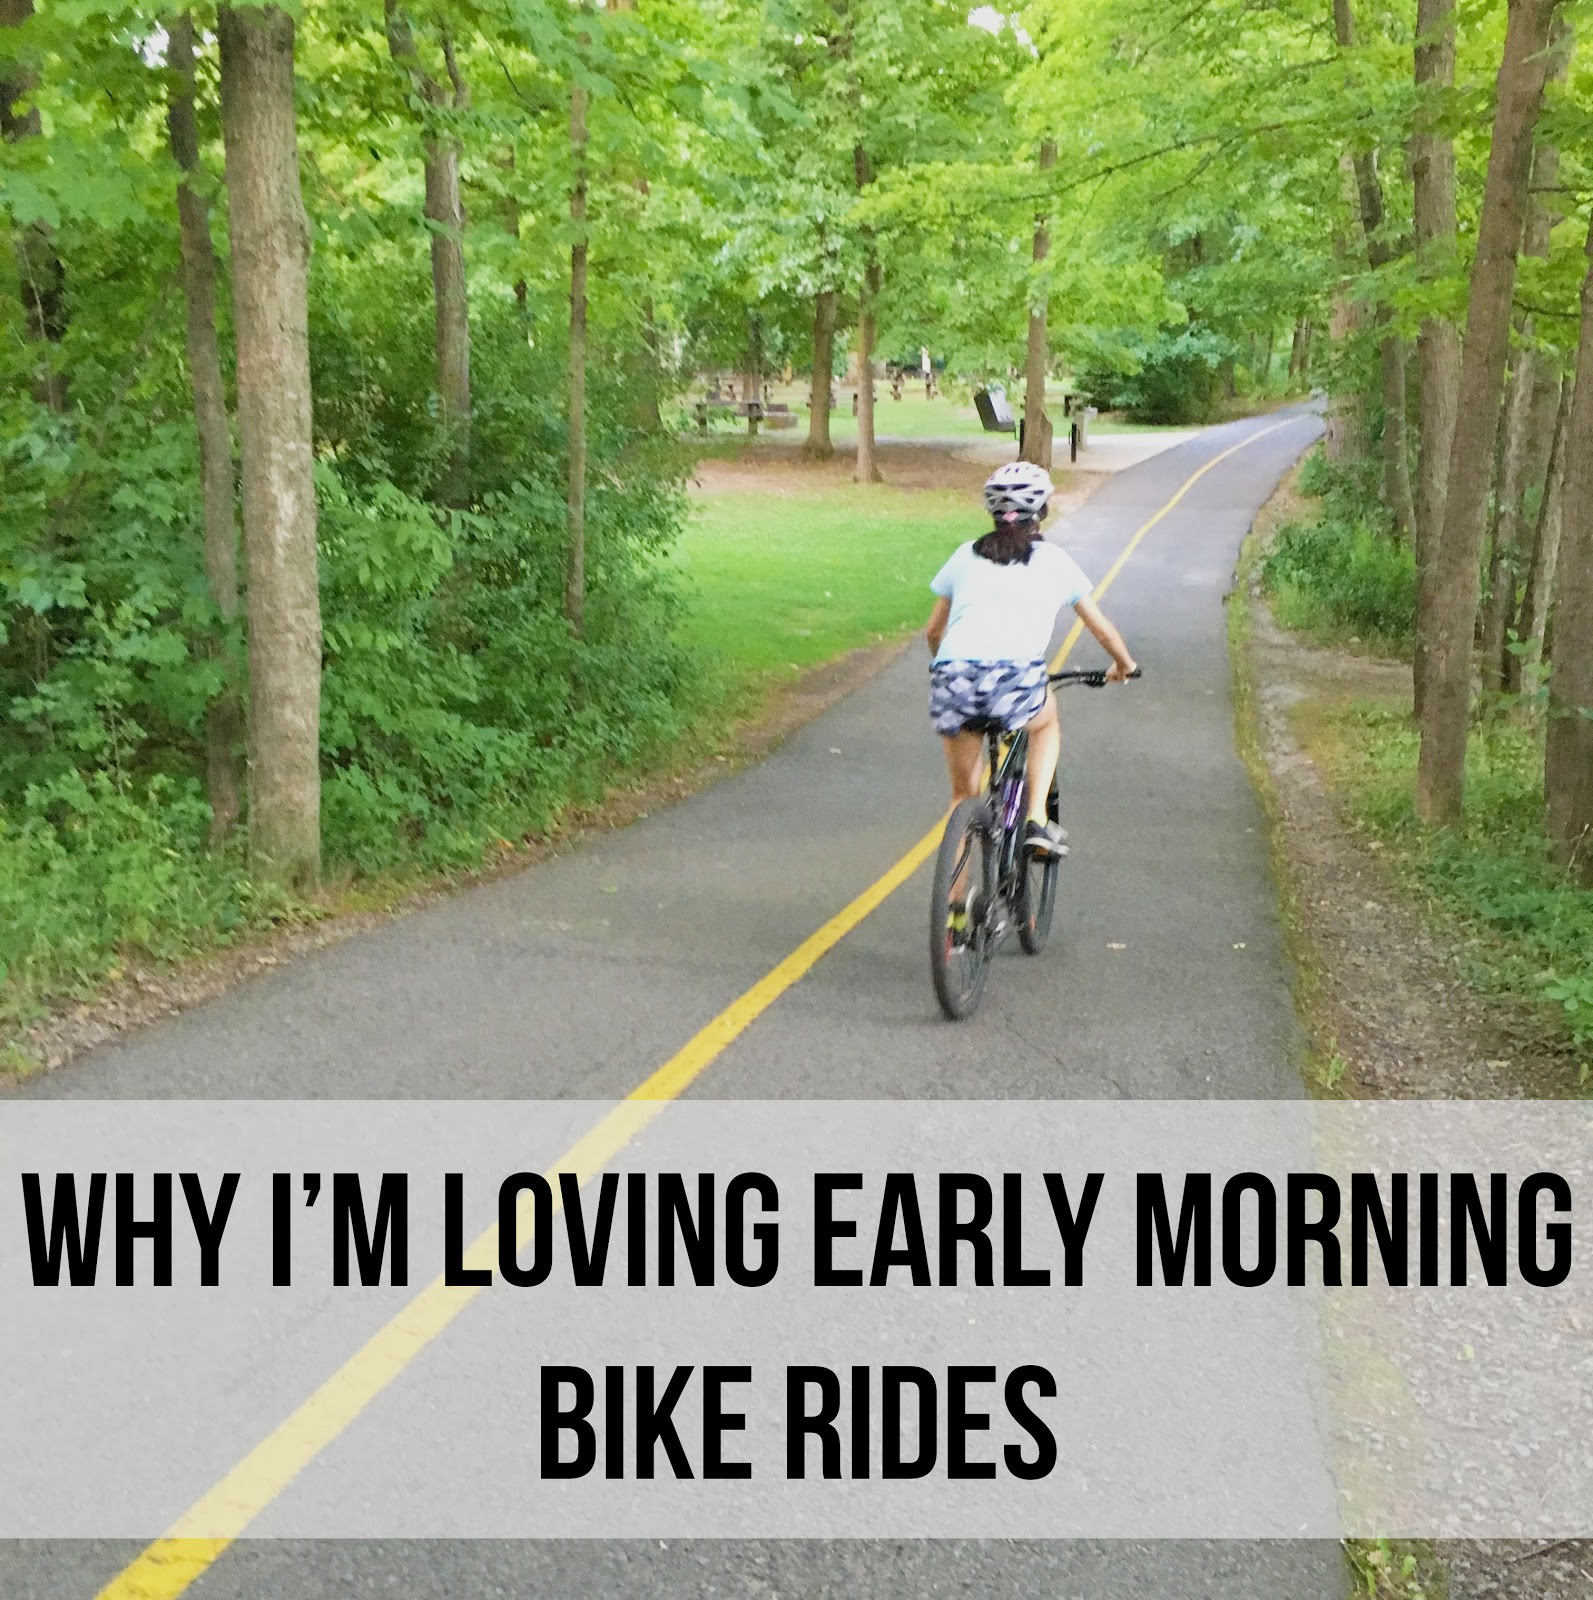 Why I'm Loving Early Morning Bike Rides | Akinokiki